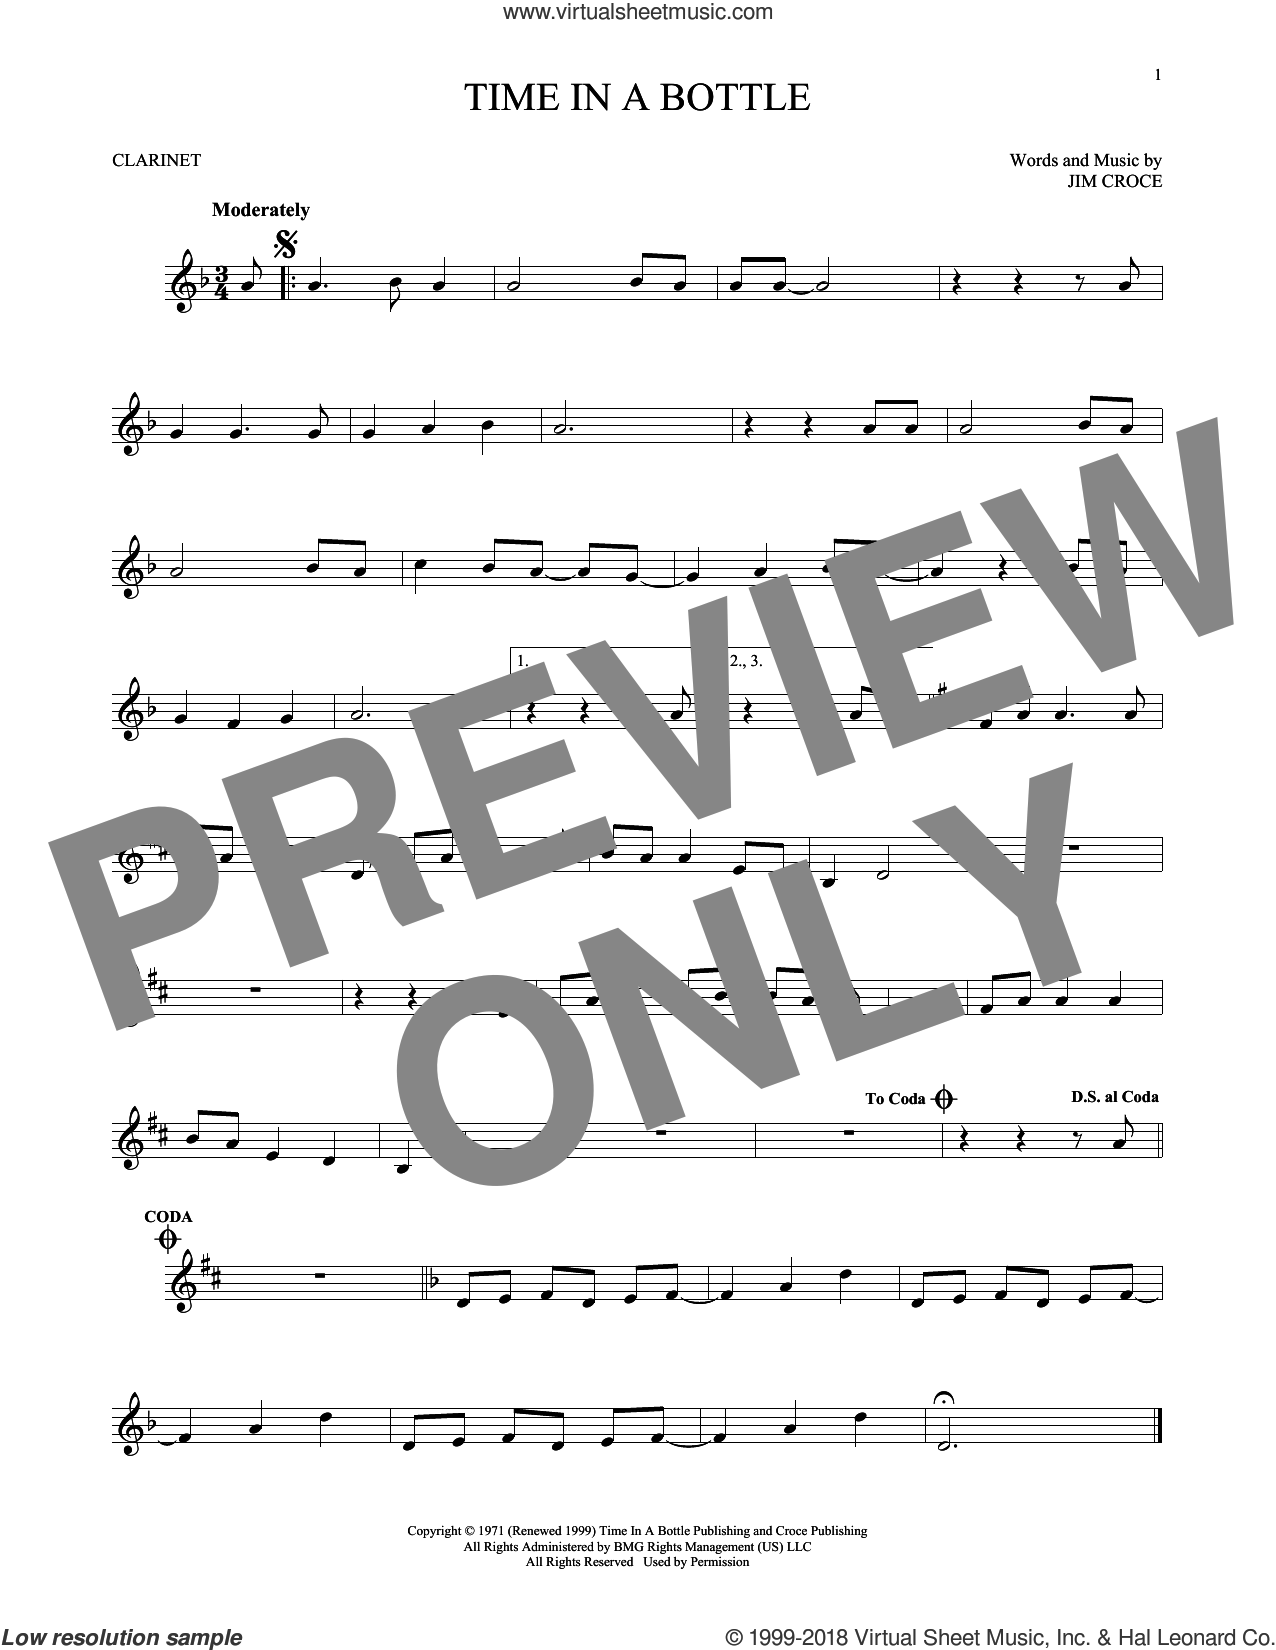 Time In A Bottle sheet music for clarinet solo by Jim Croce, intermediate skill level